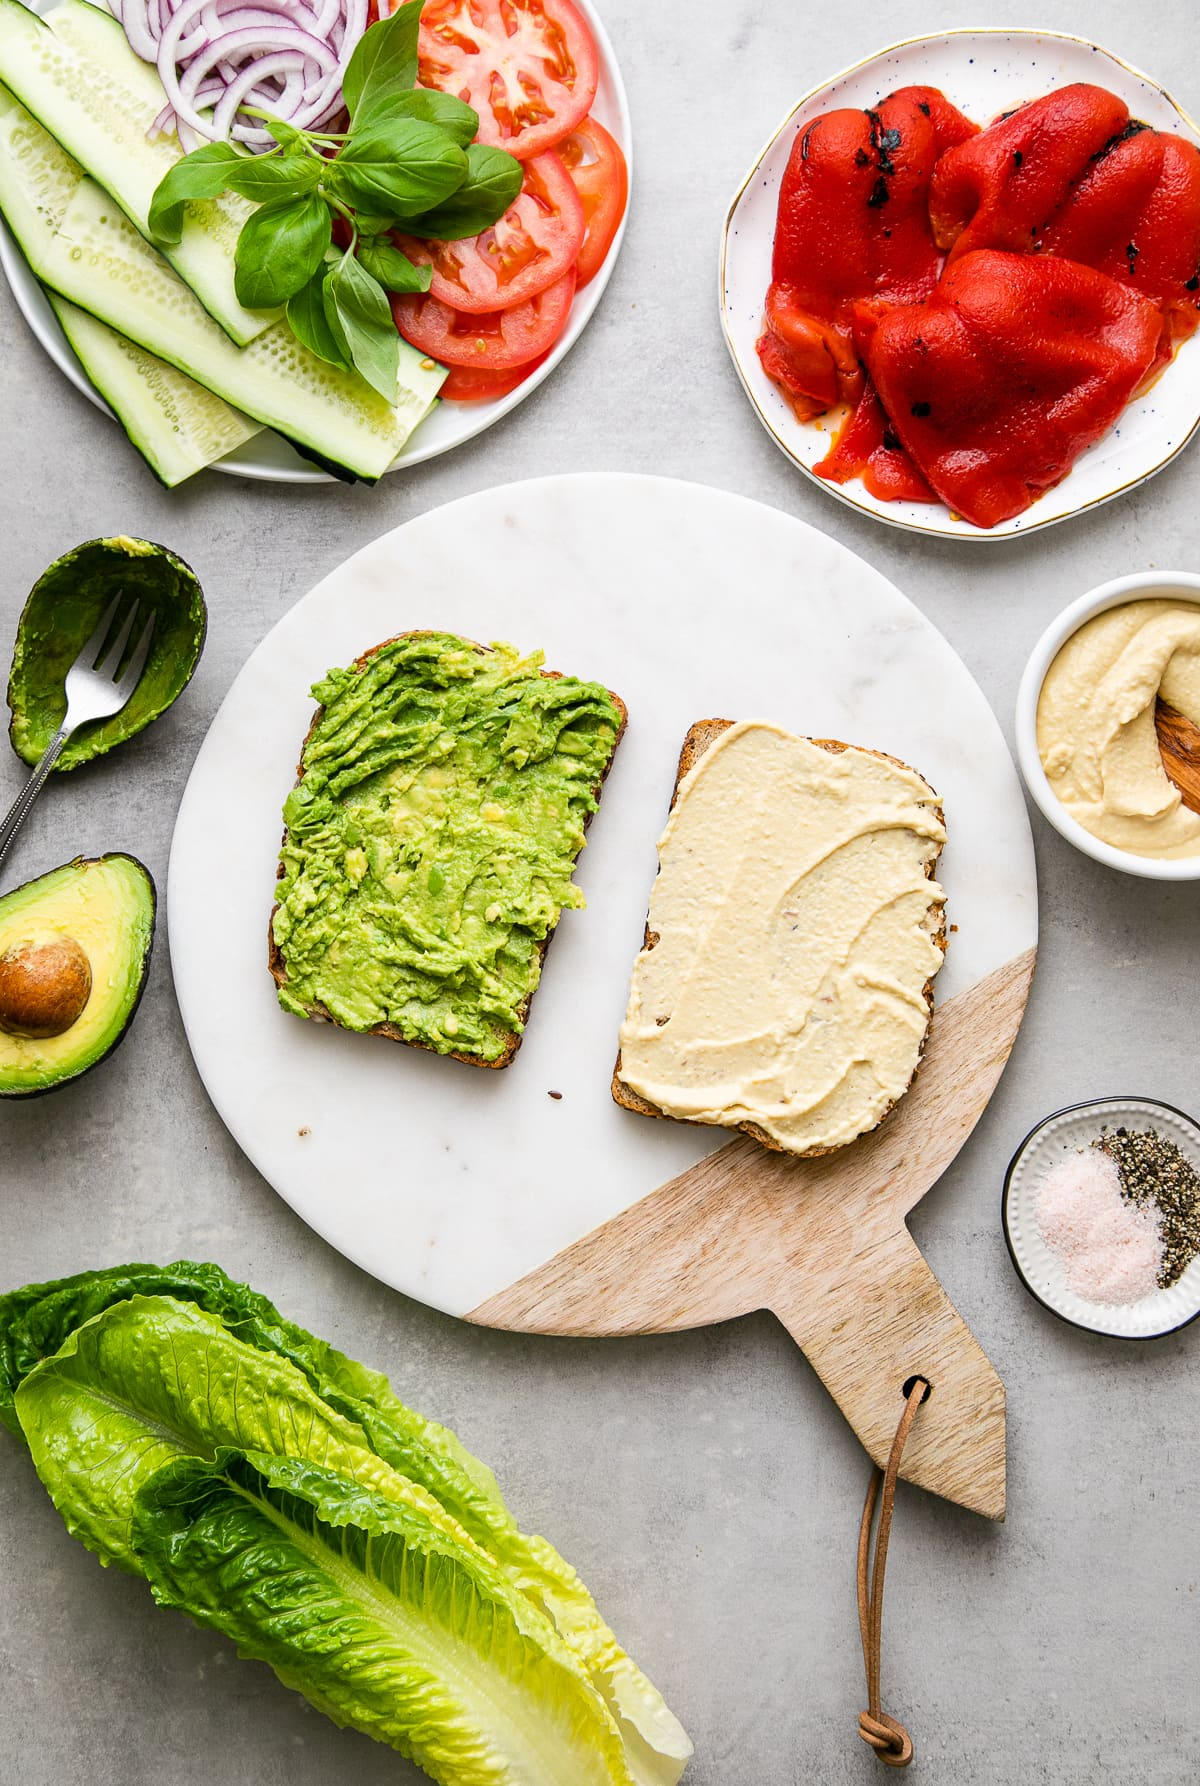 top down view showing the process of layer avocado and hummus on bread slices with items surrounding.